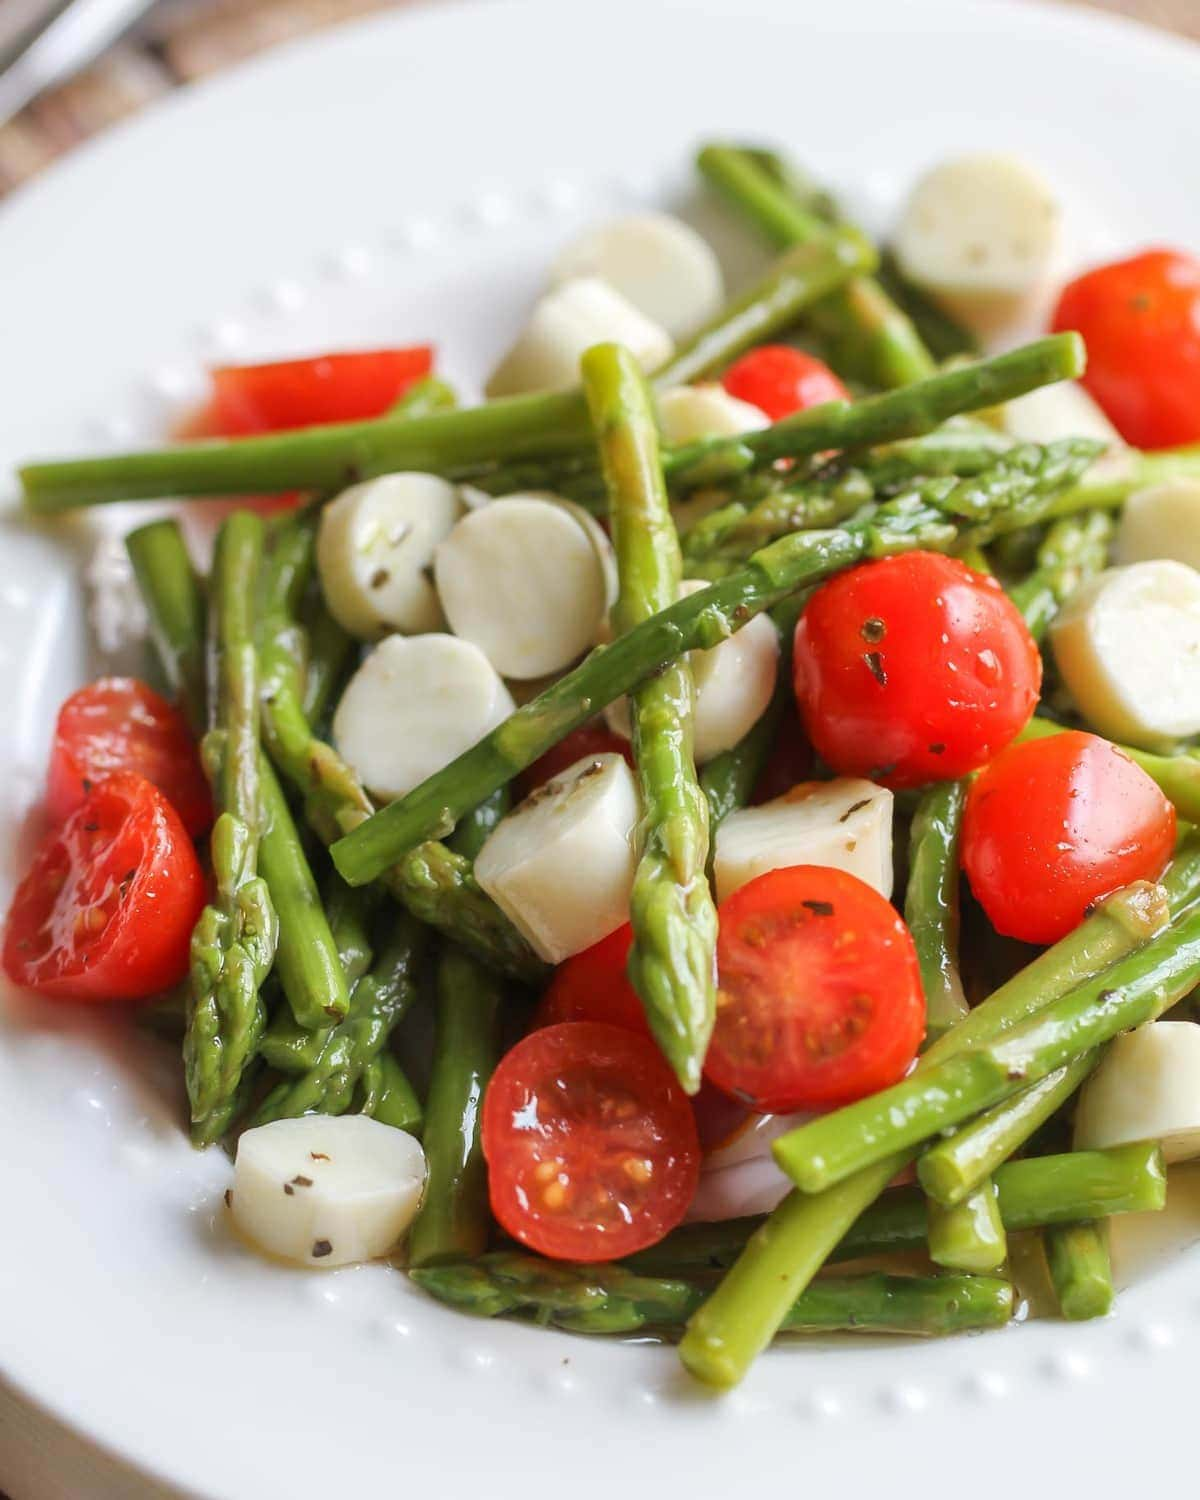 Cold asparagus salad in a white dish